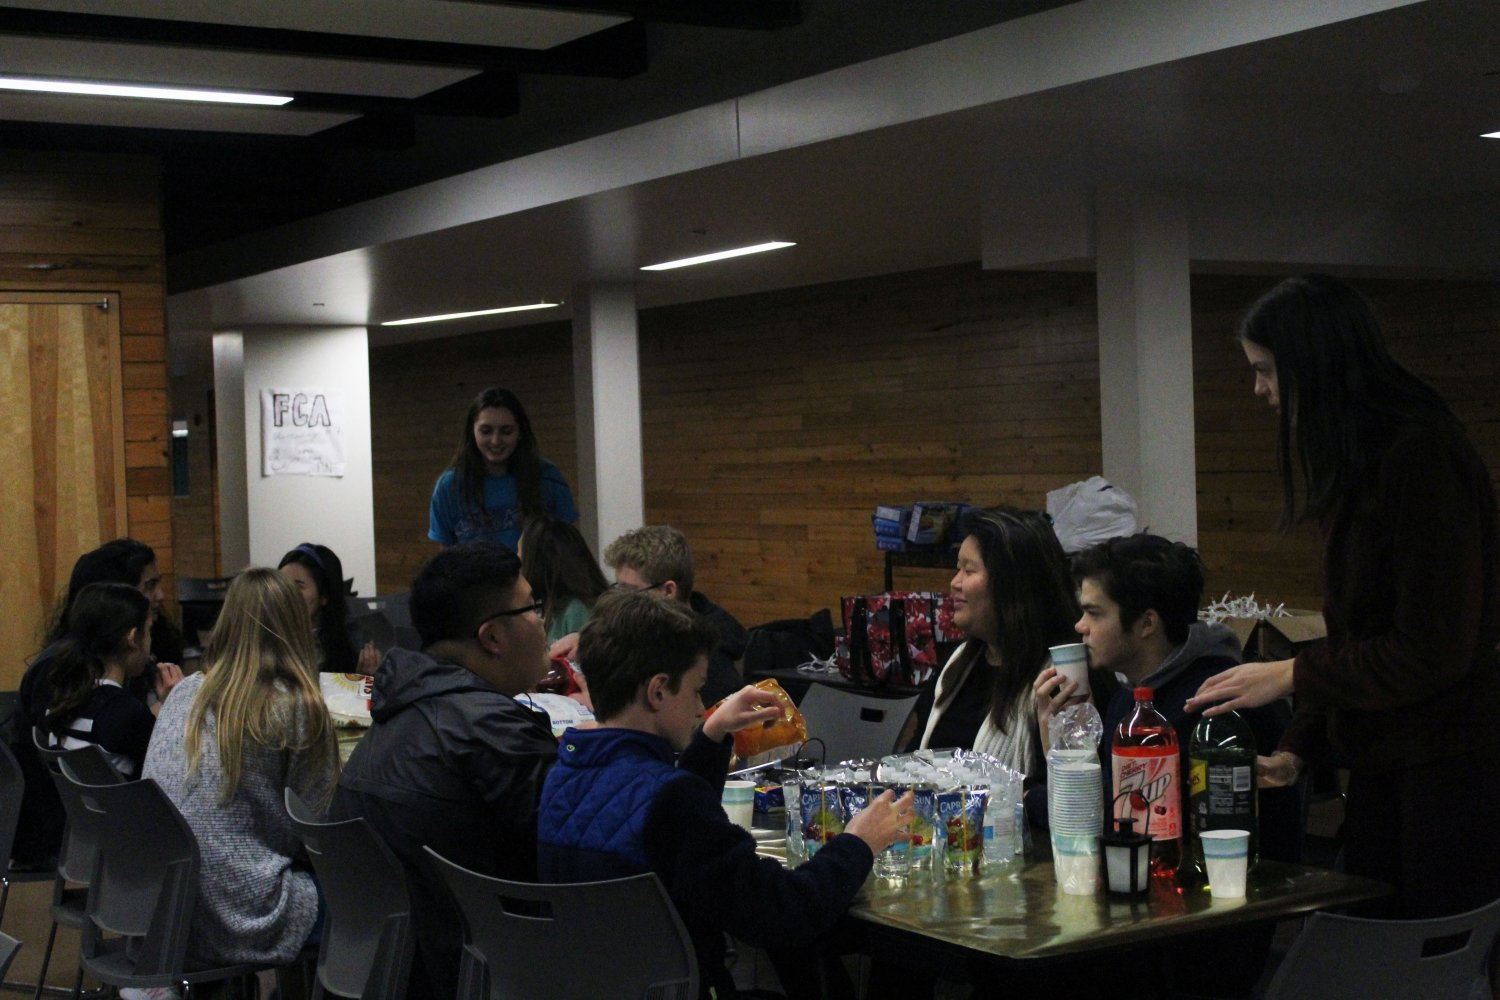 As the fun begins, members from other clubs continue to arrive, grabbing themselves snacks and drinks before they find their spots at the table. Photo by Kyla Barnett